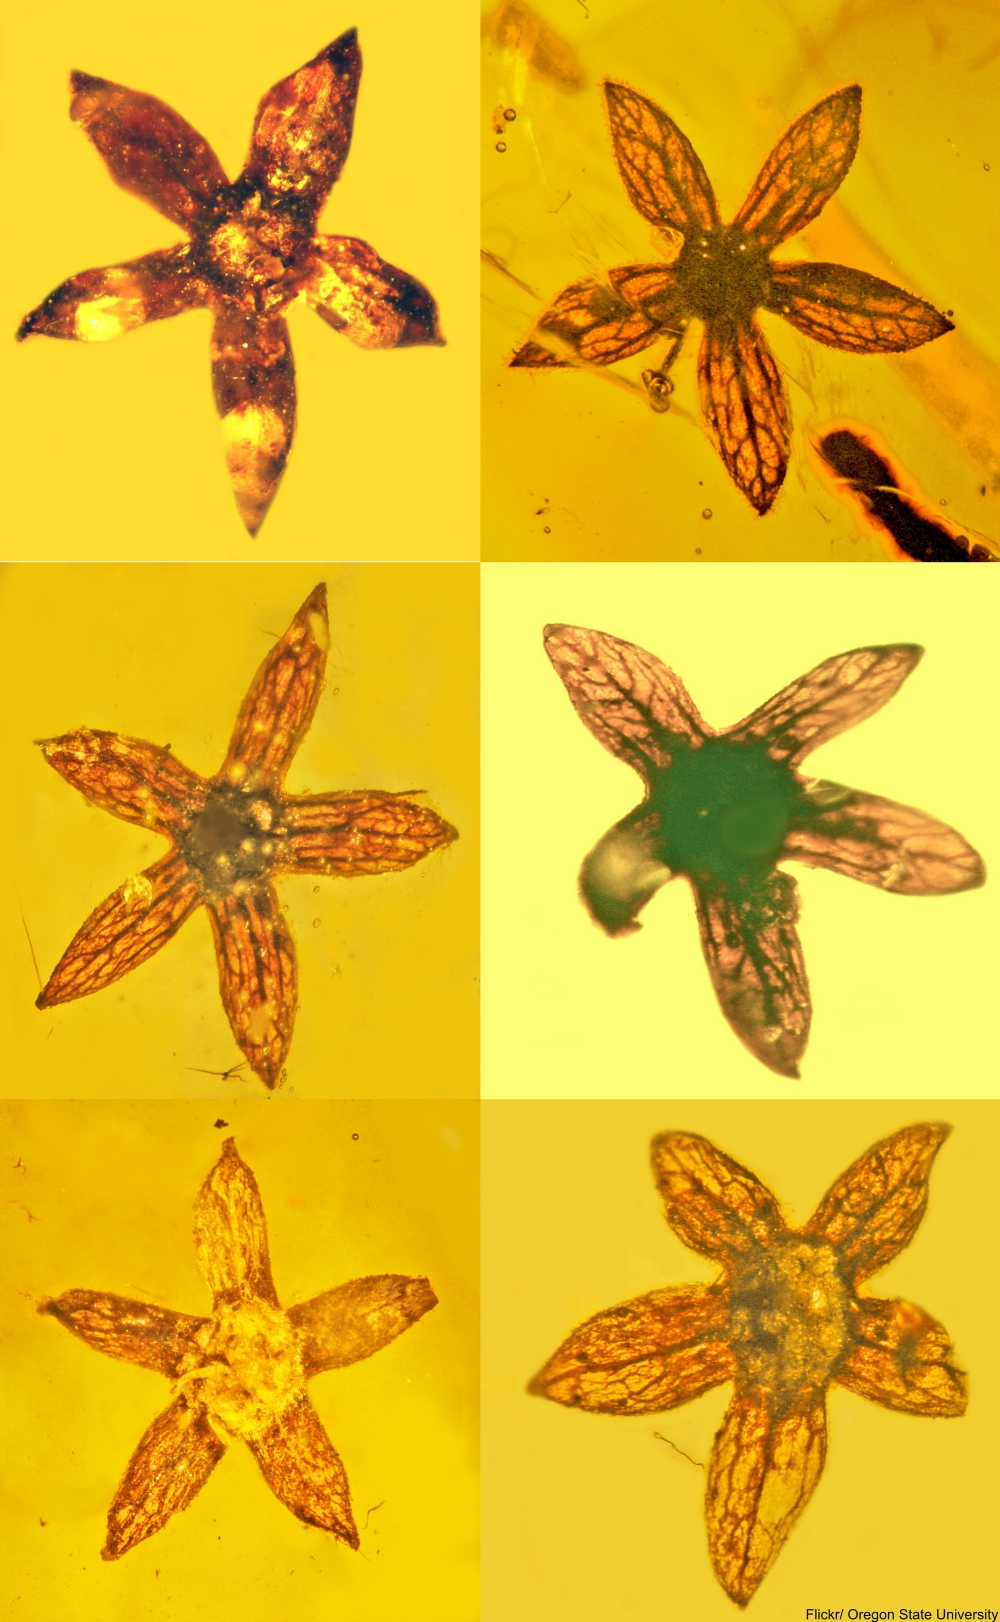 100 Million Year Old Flowers Found Perfectly Preserved in Amber